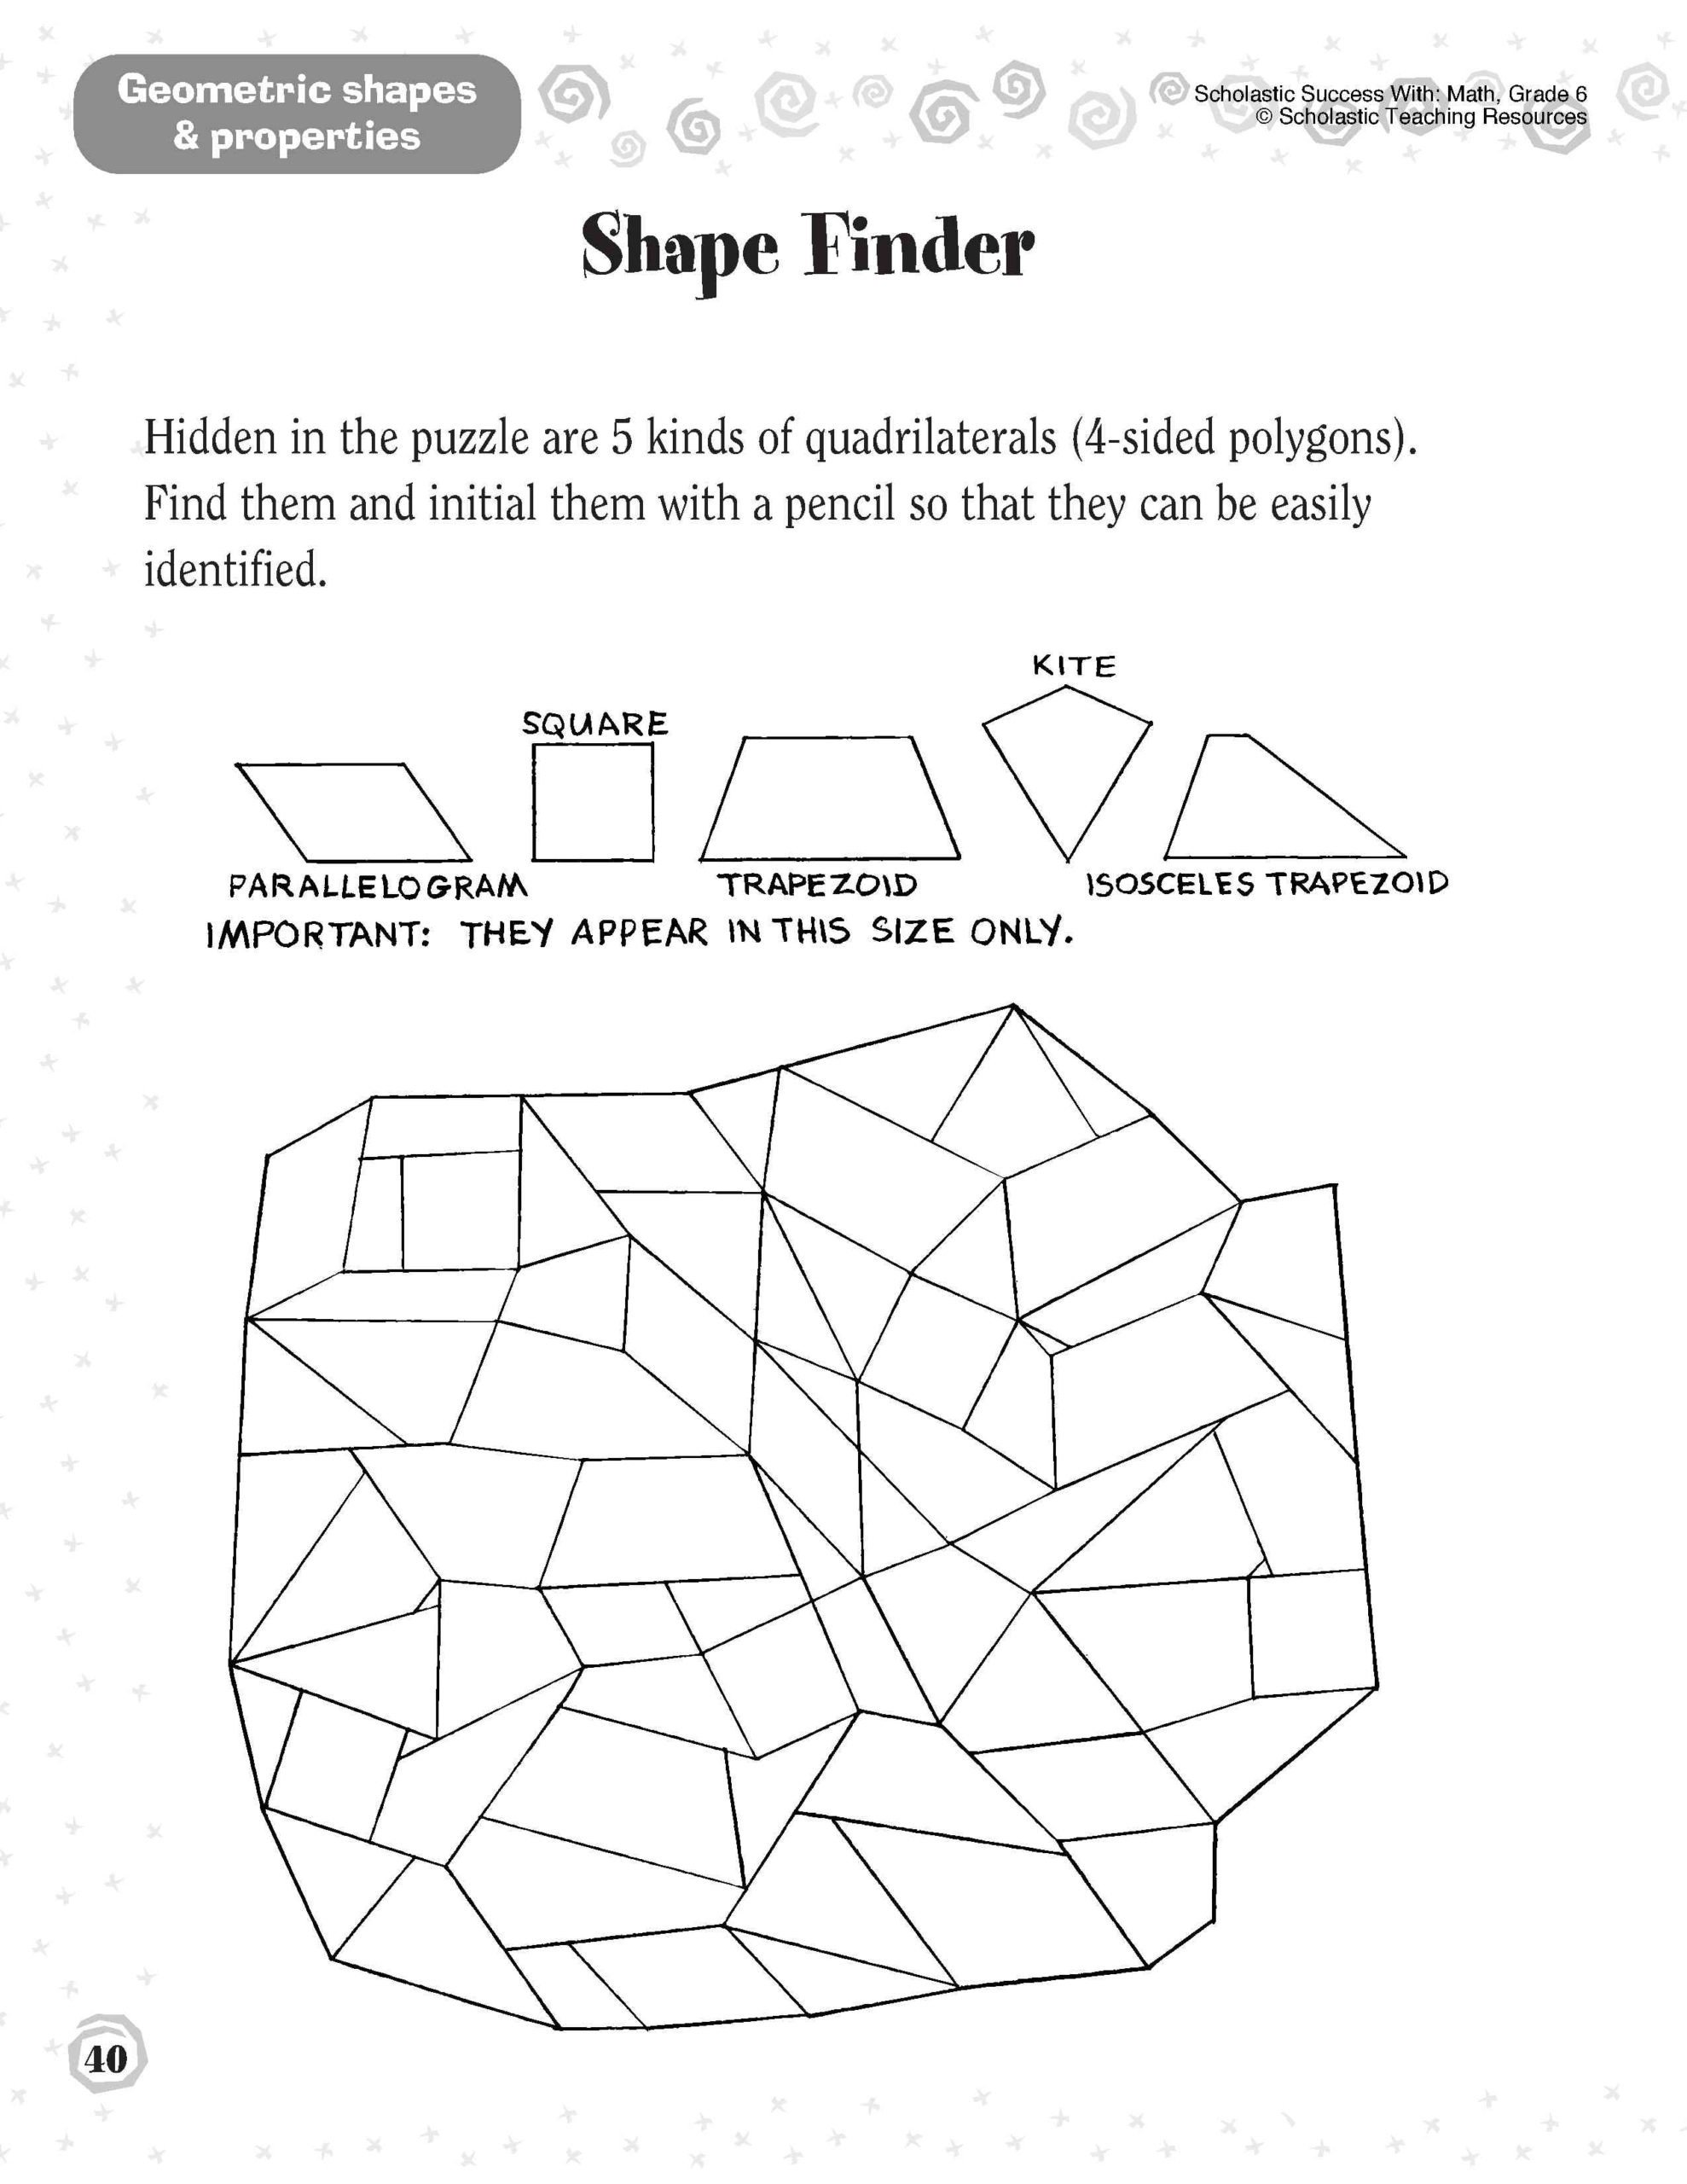 Geometric Shapes Patterns Worksheets 1st Grade Shapes Worksheet Printable Worksheets and